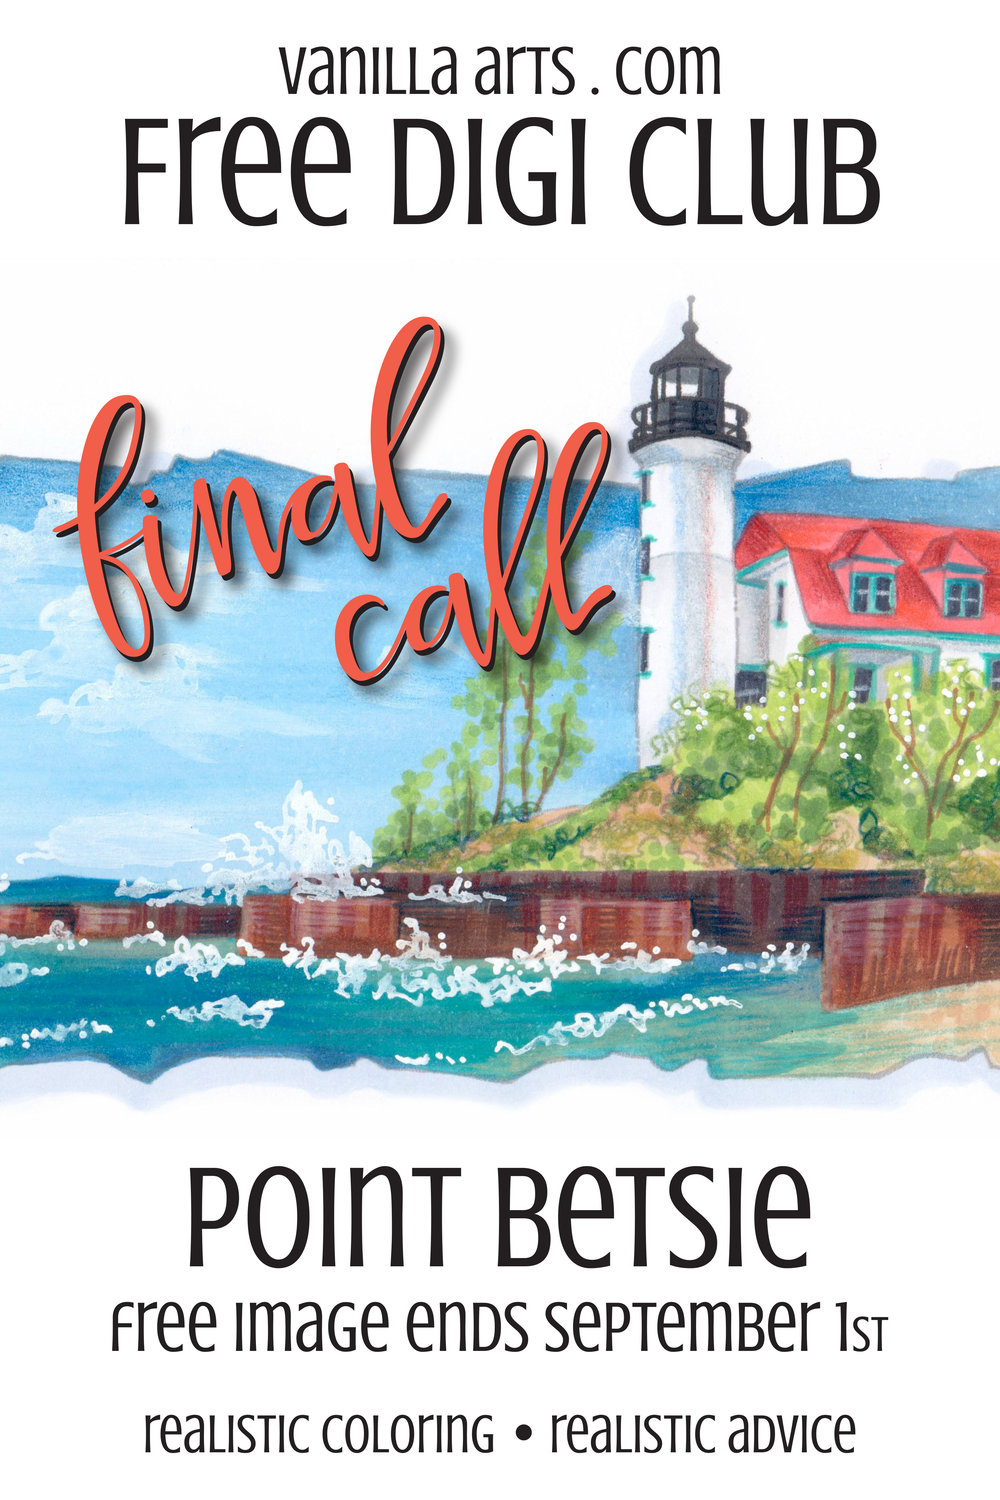 """Final Call for """"Point Betsie""""- a FREE digital stamp that's perfect for Copic Marker, colored pencils, even watercolor! Get your downloadable copy at VanillaArts.com"""